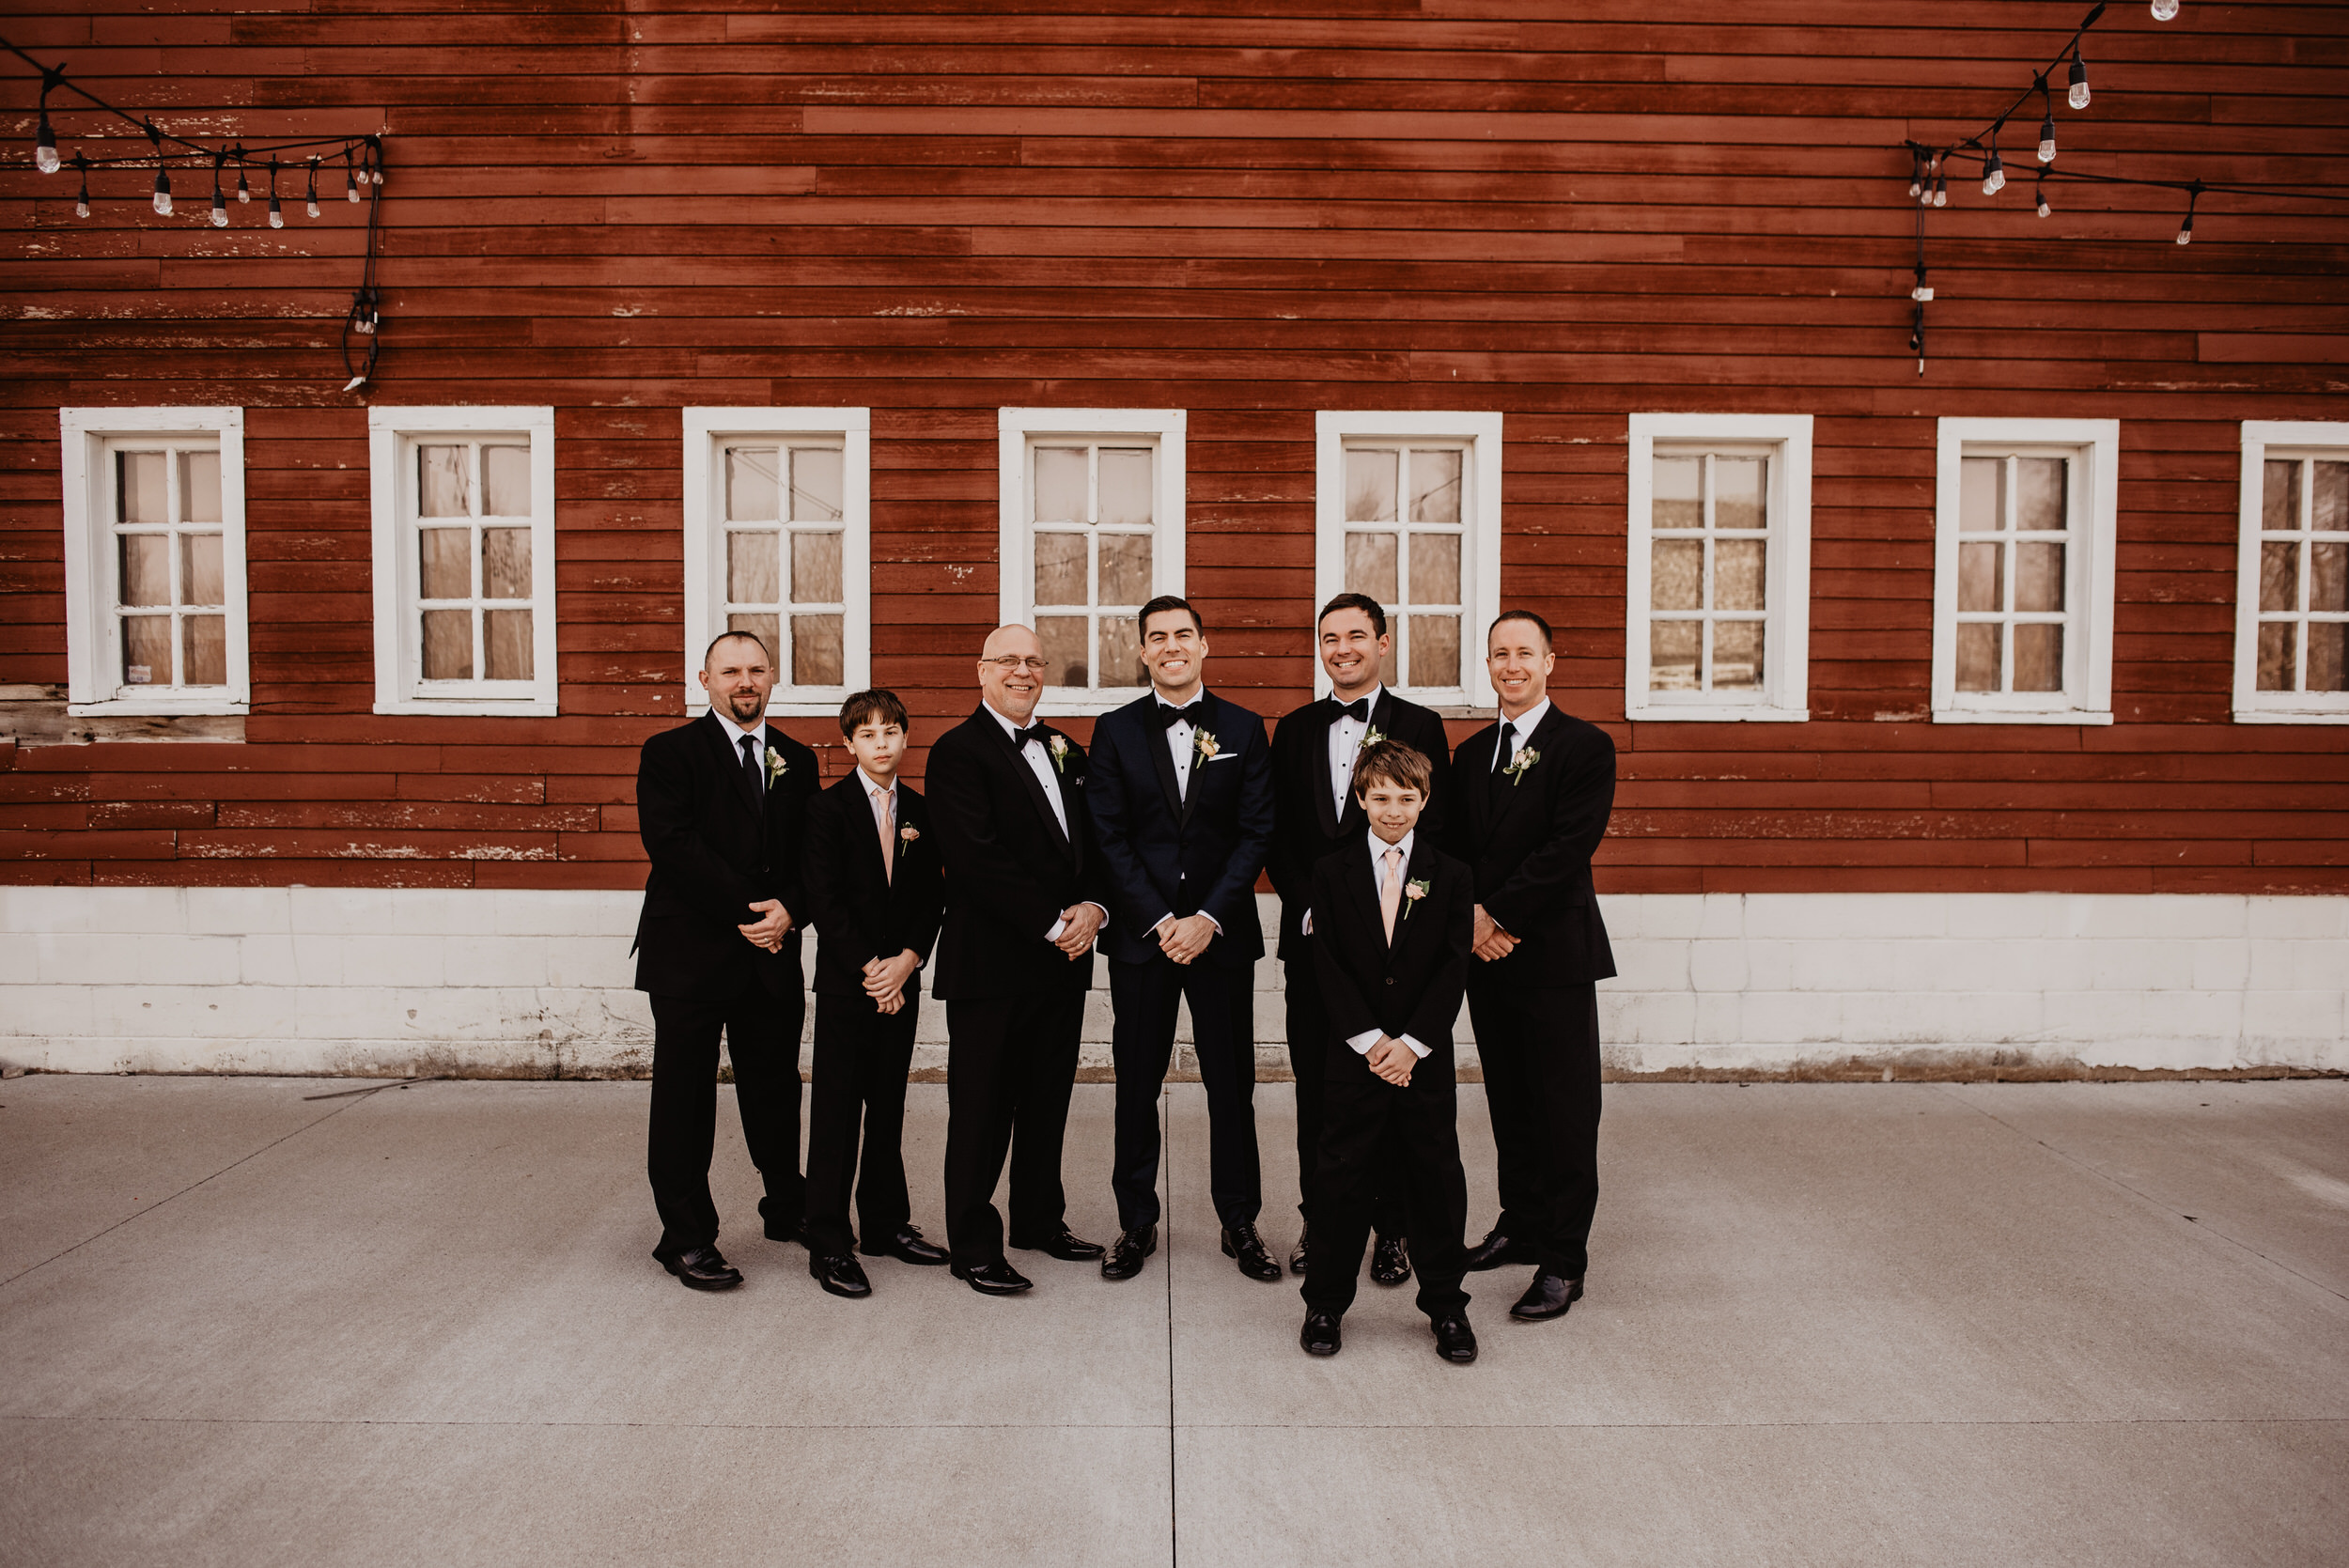 The Barn at the Ackerhurst Dairy Farm Omaha Nebraska Wedding Kaylie Sirek Photography057.jpg